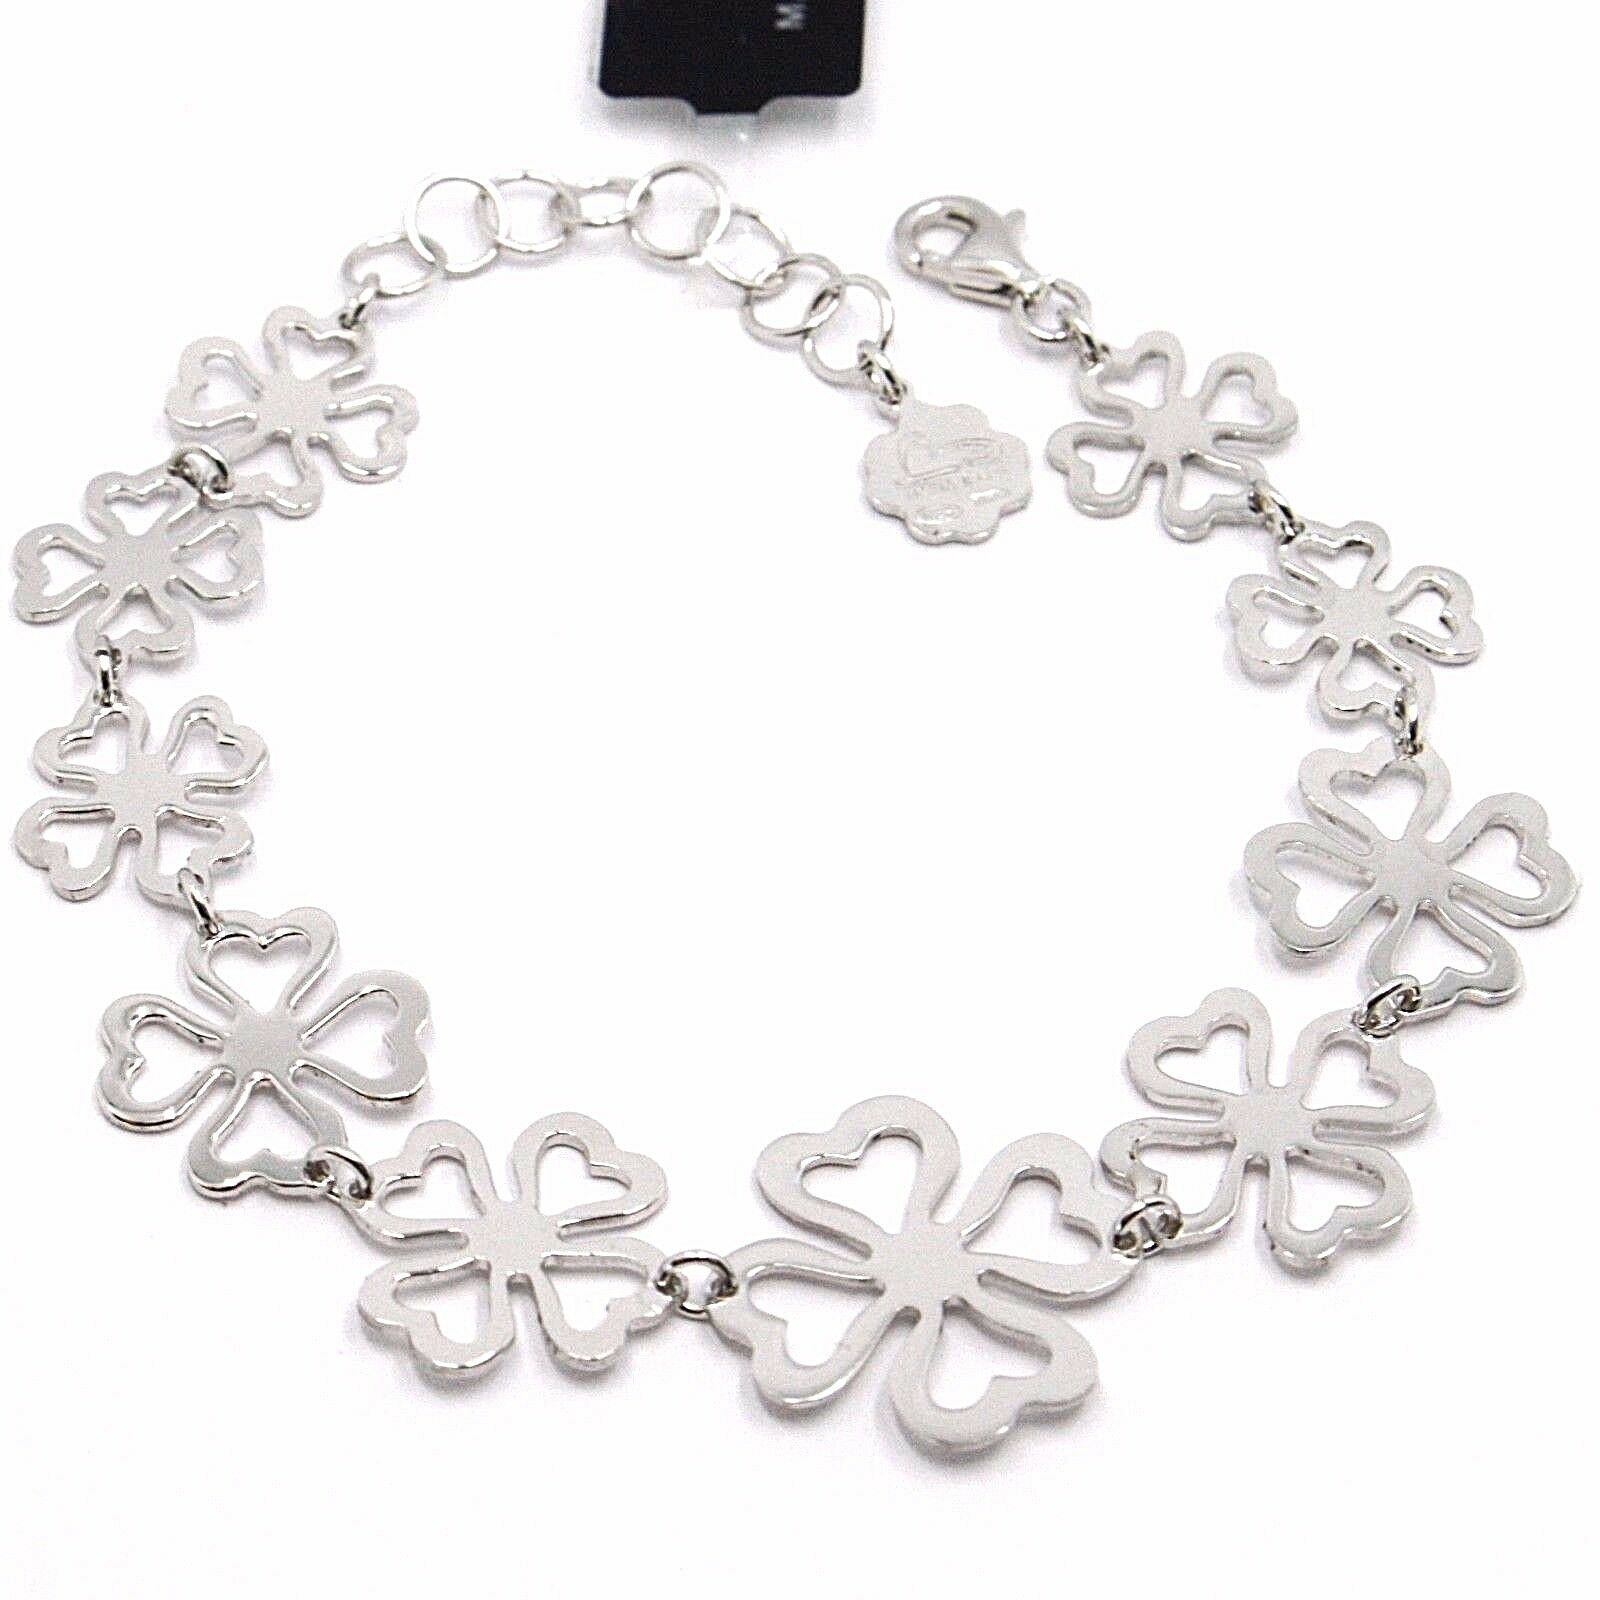 Bracelet Silver 925,Four-Leaf Clover Good Luck Charm,by Maria Ielpo ,Made in